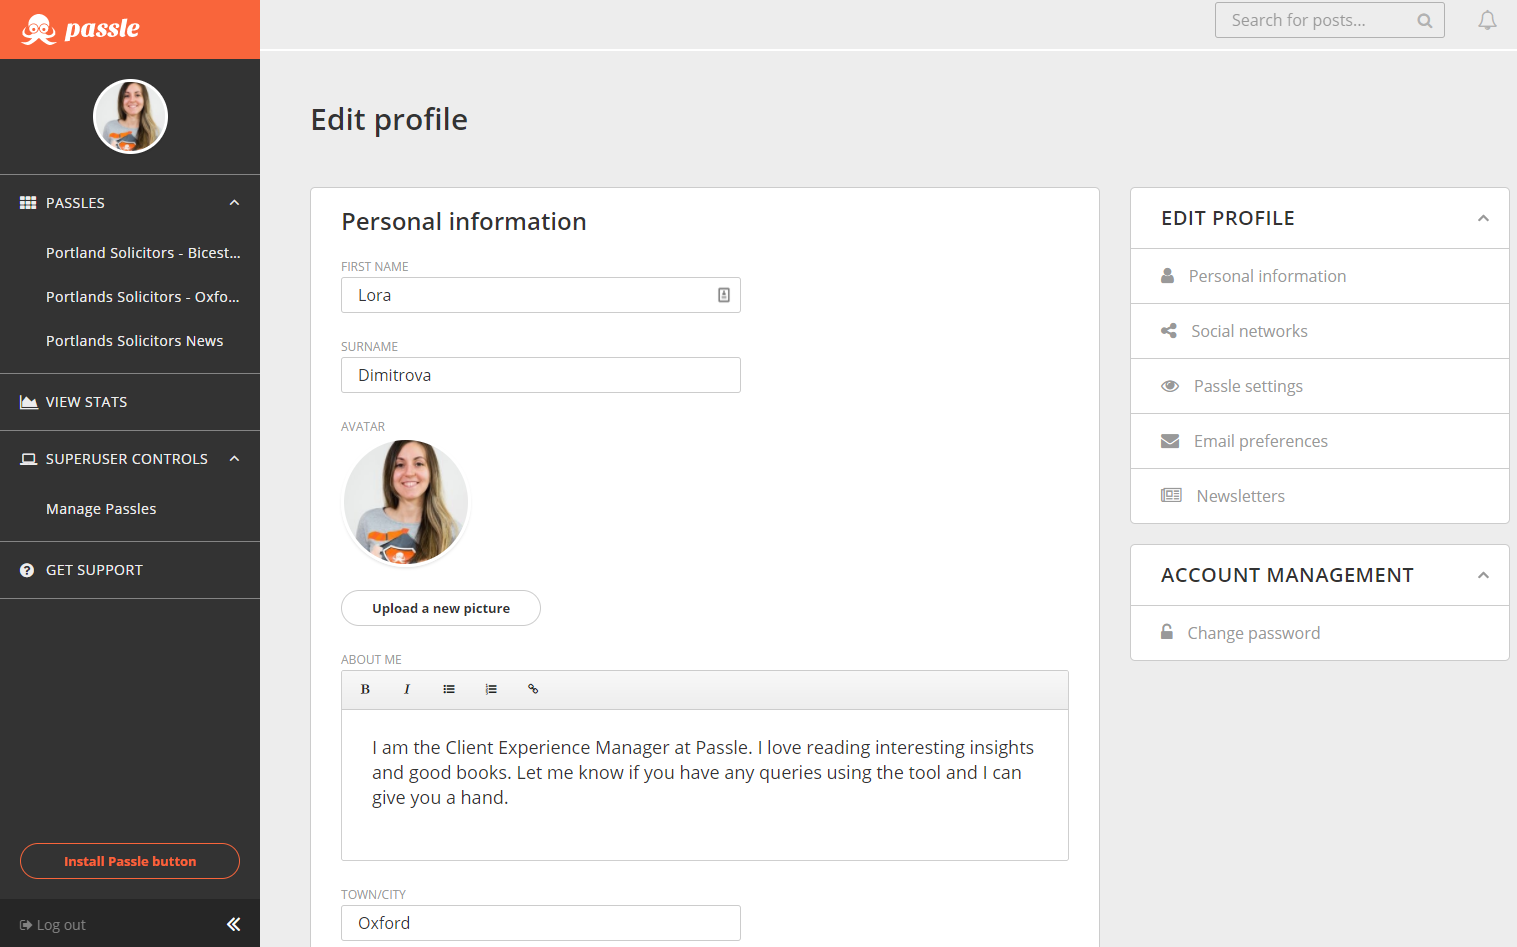 How to update the info on your personal profile